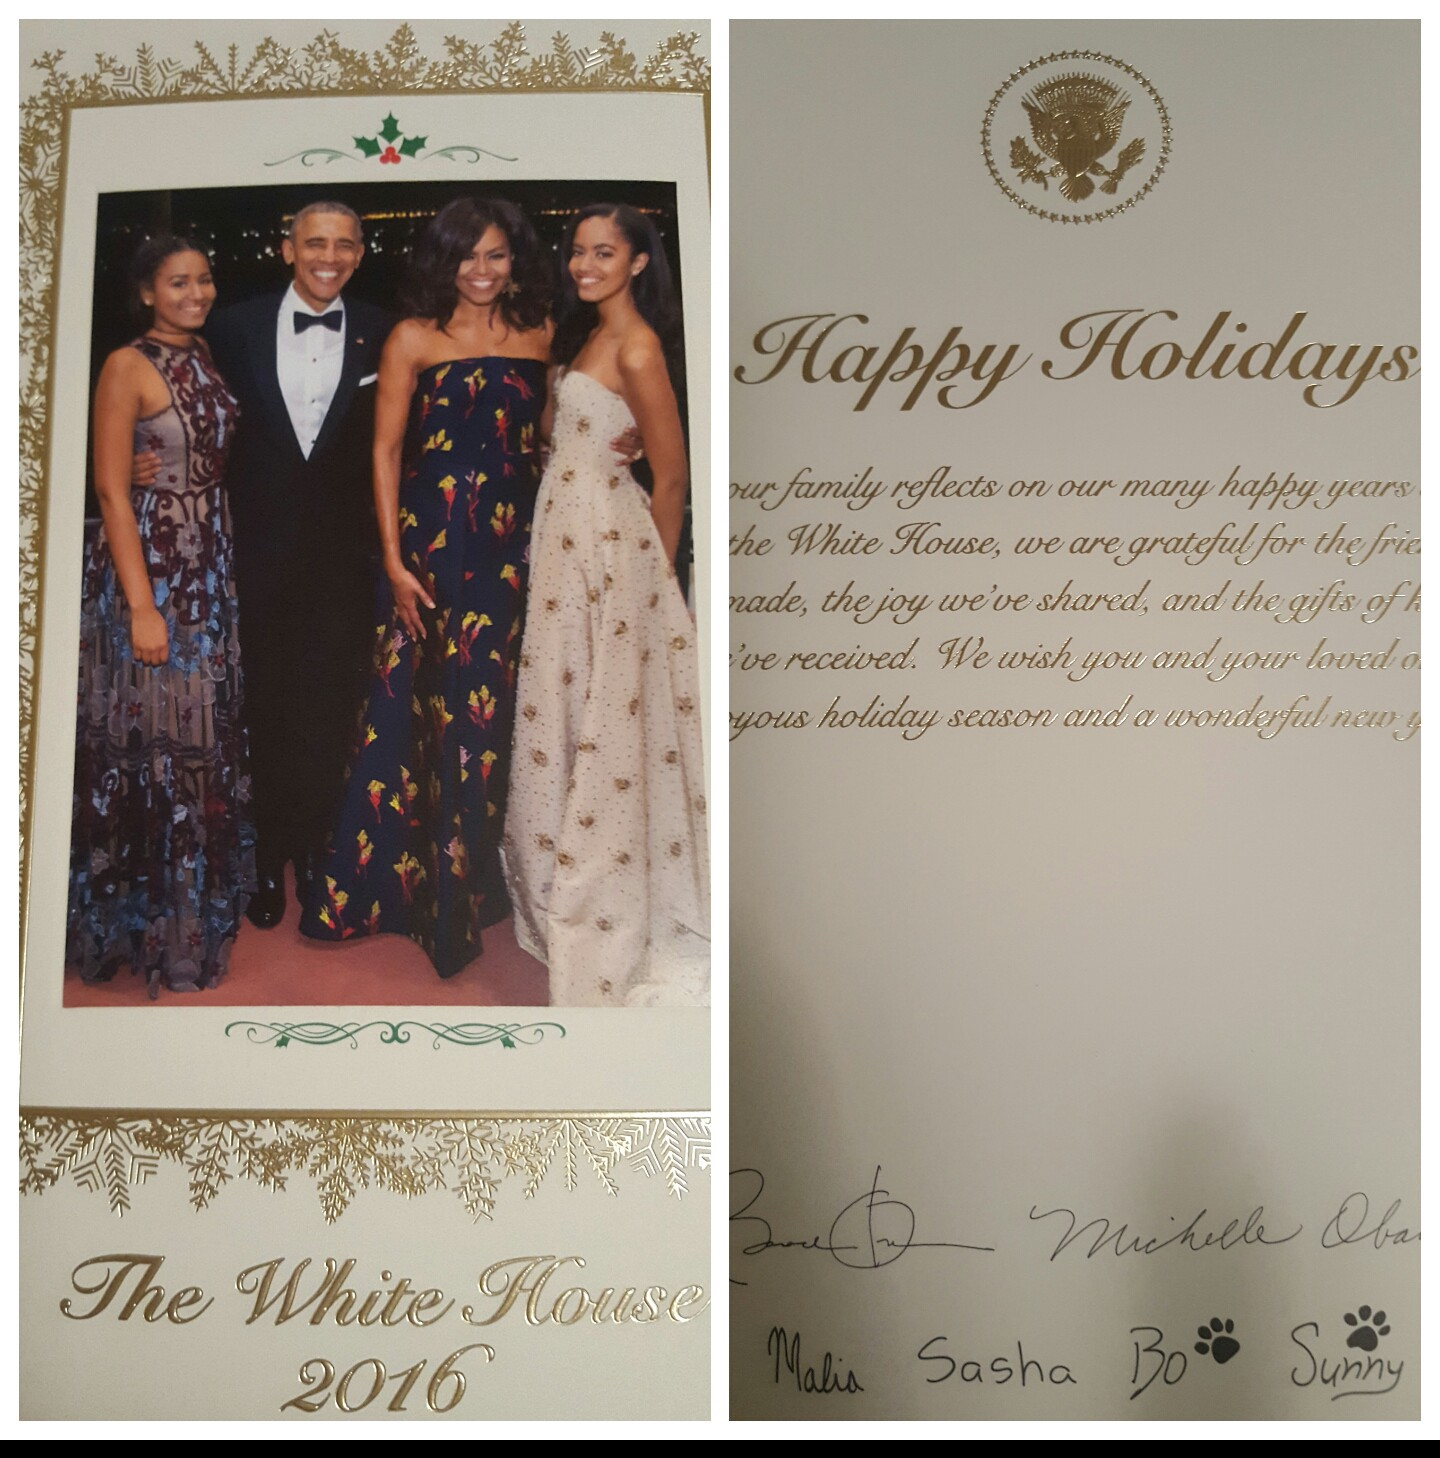 Carla R Jenkins Receives Official 2016 White House Christmas Card